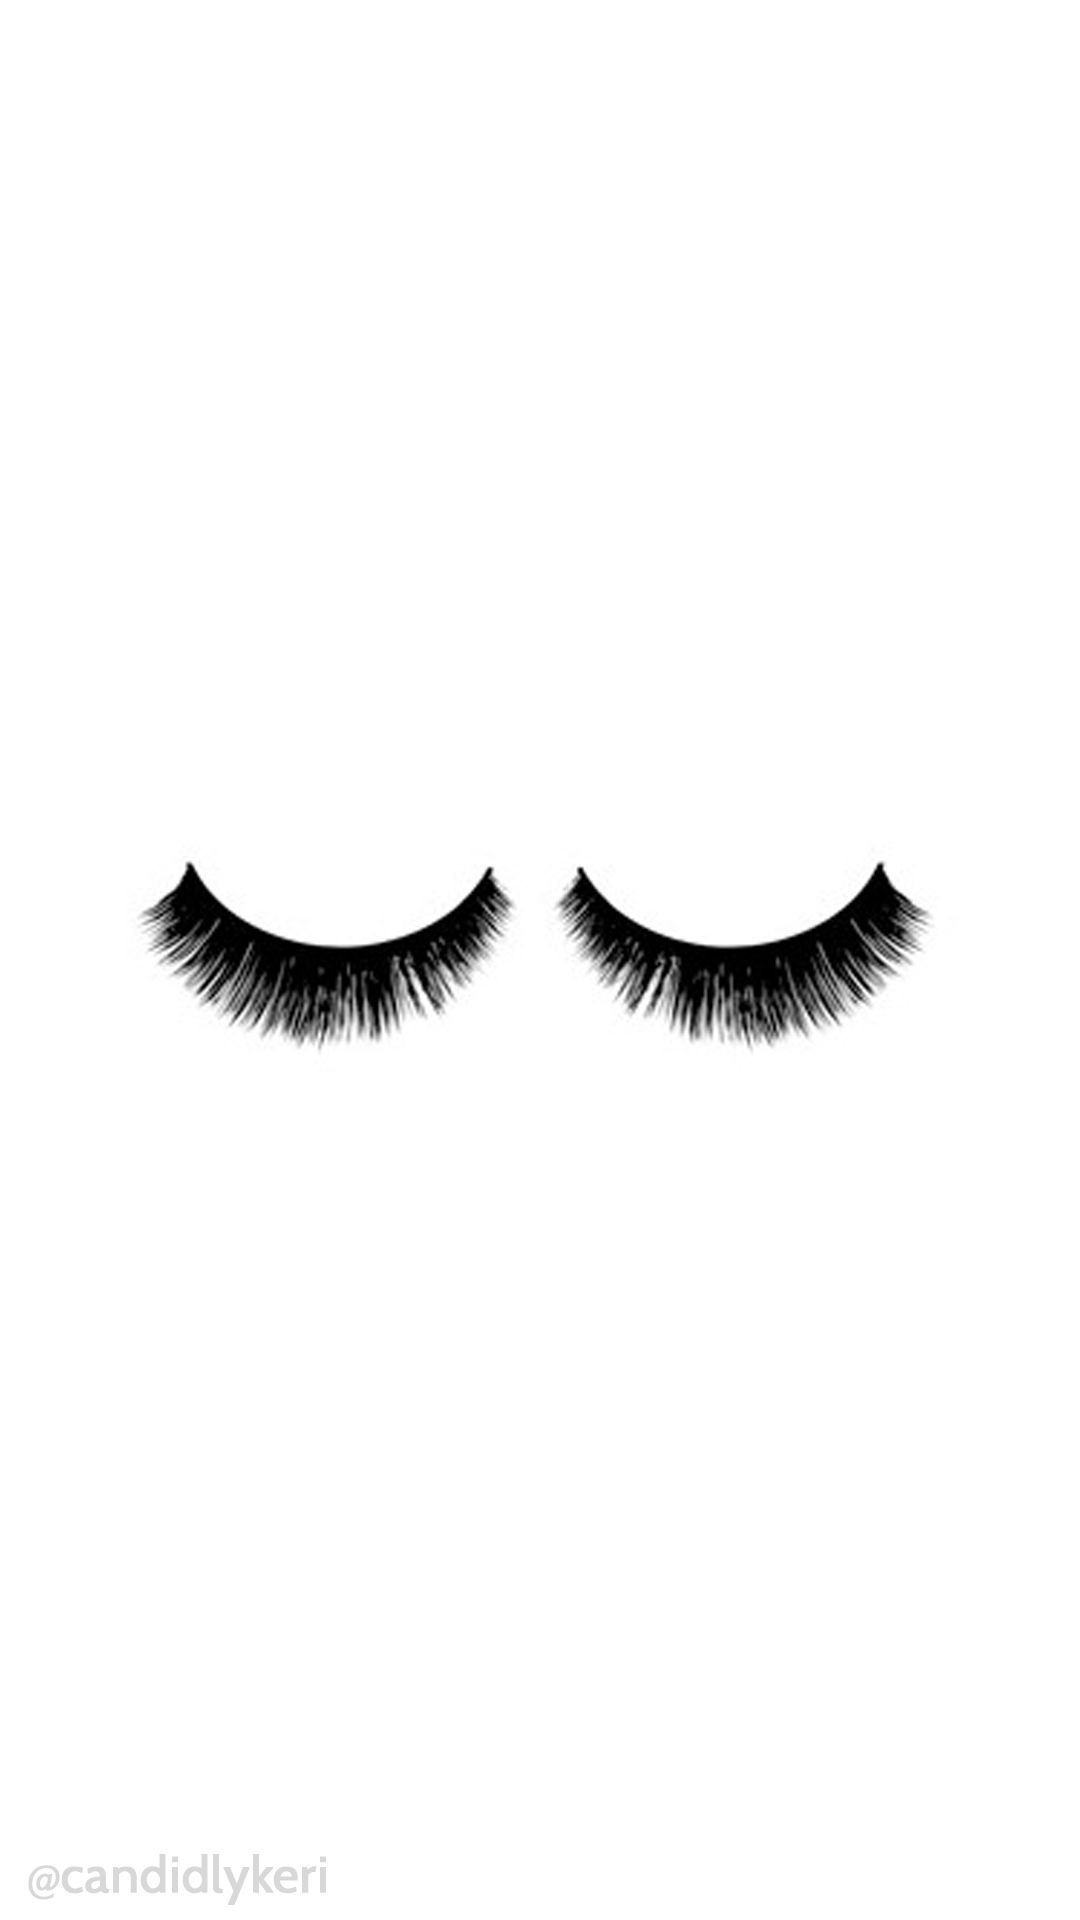 Eyelashes Fake lashes sleepy background wallpaper you can for free on the blog For any device mobile desktop iphone android